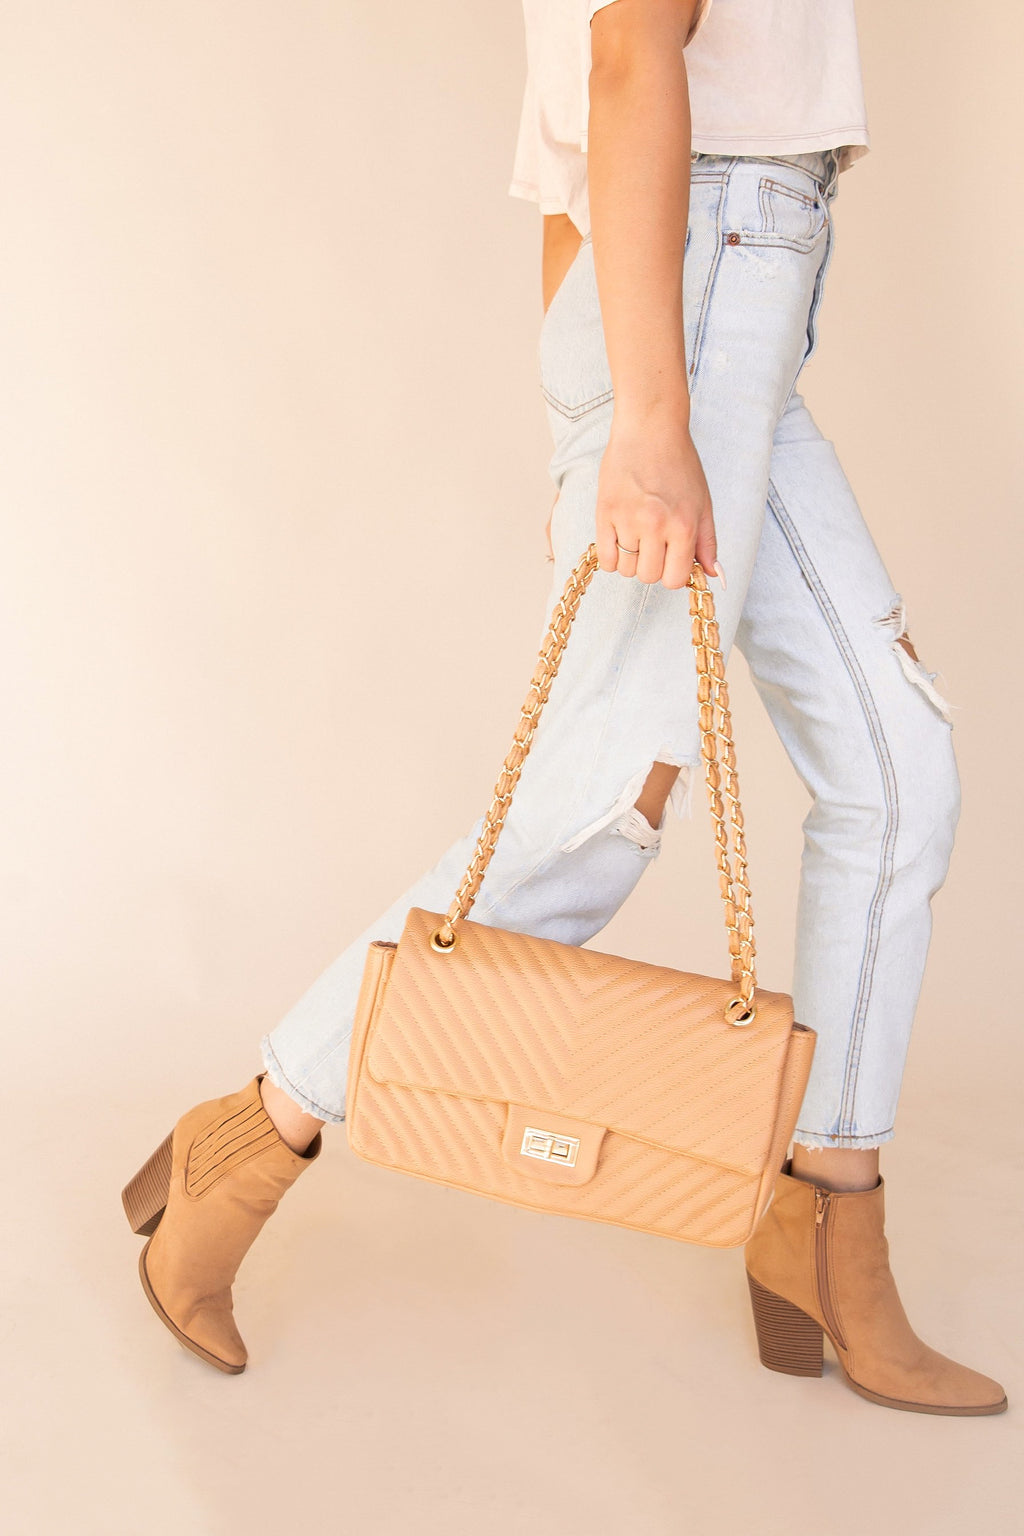 Ember Tan Quilted Bag | LLACIE